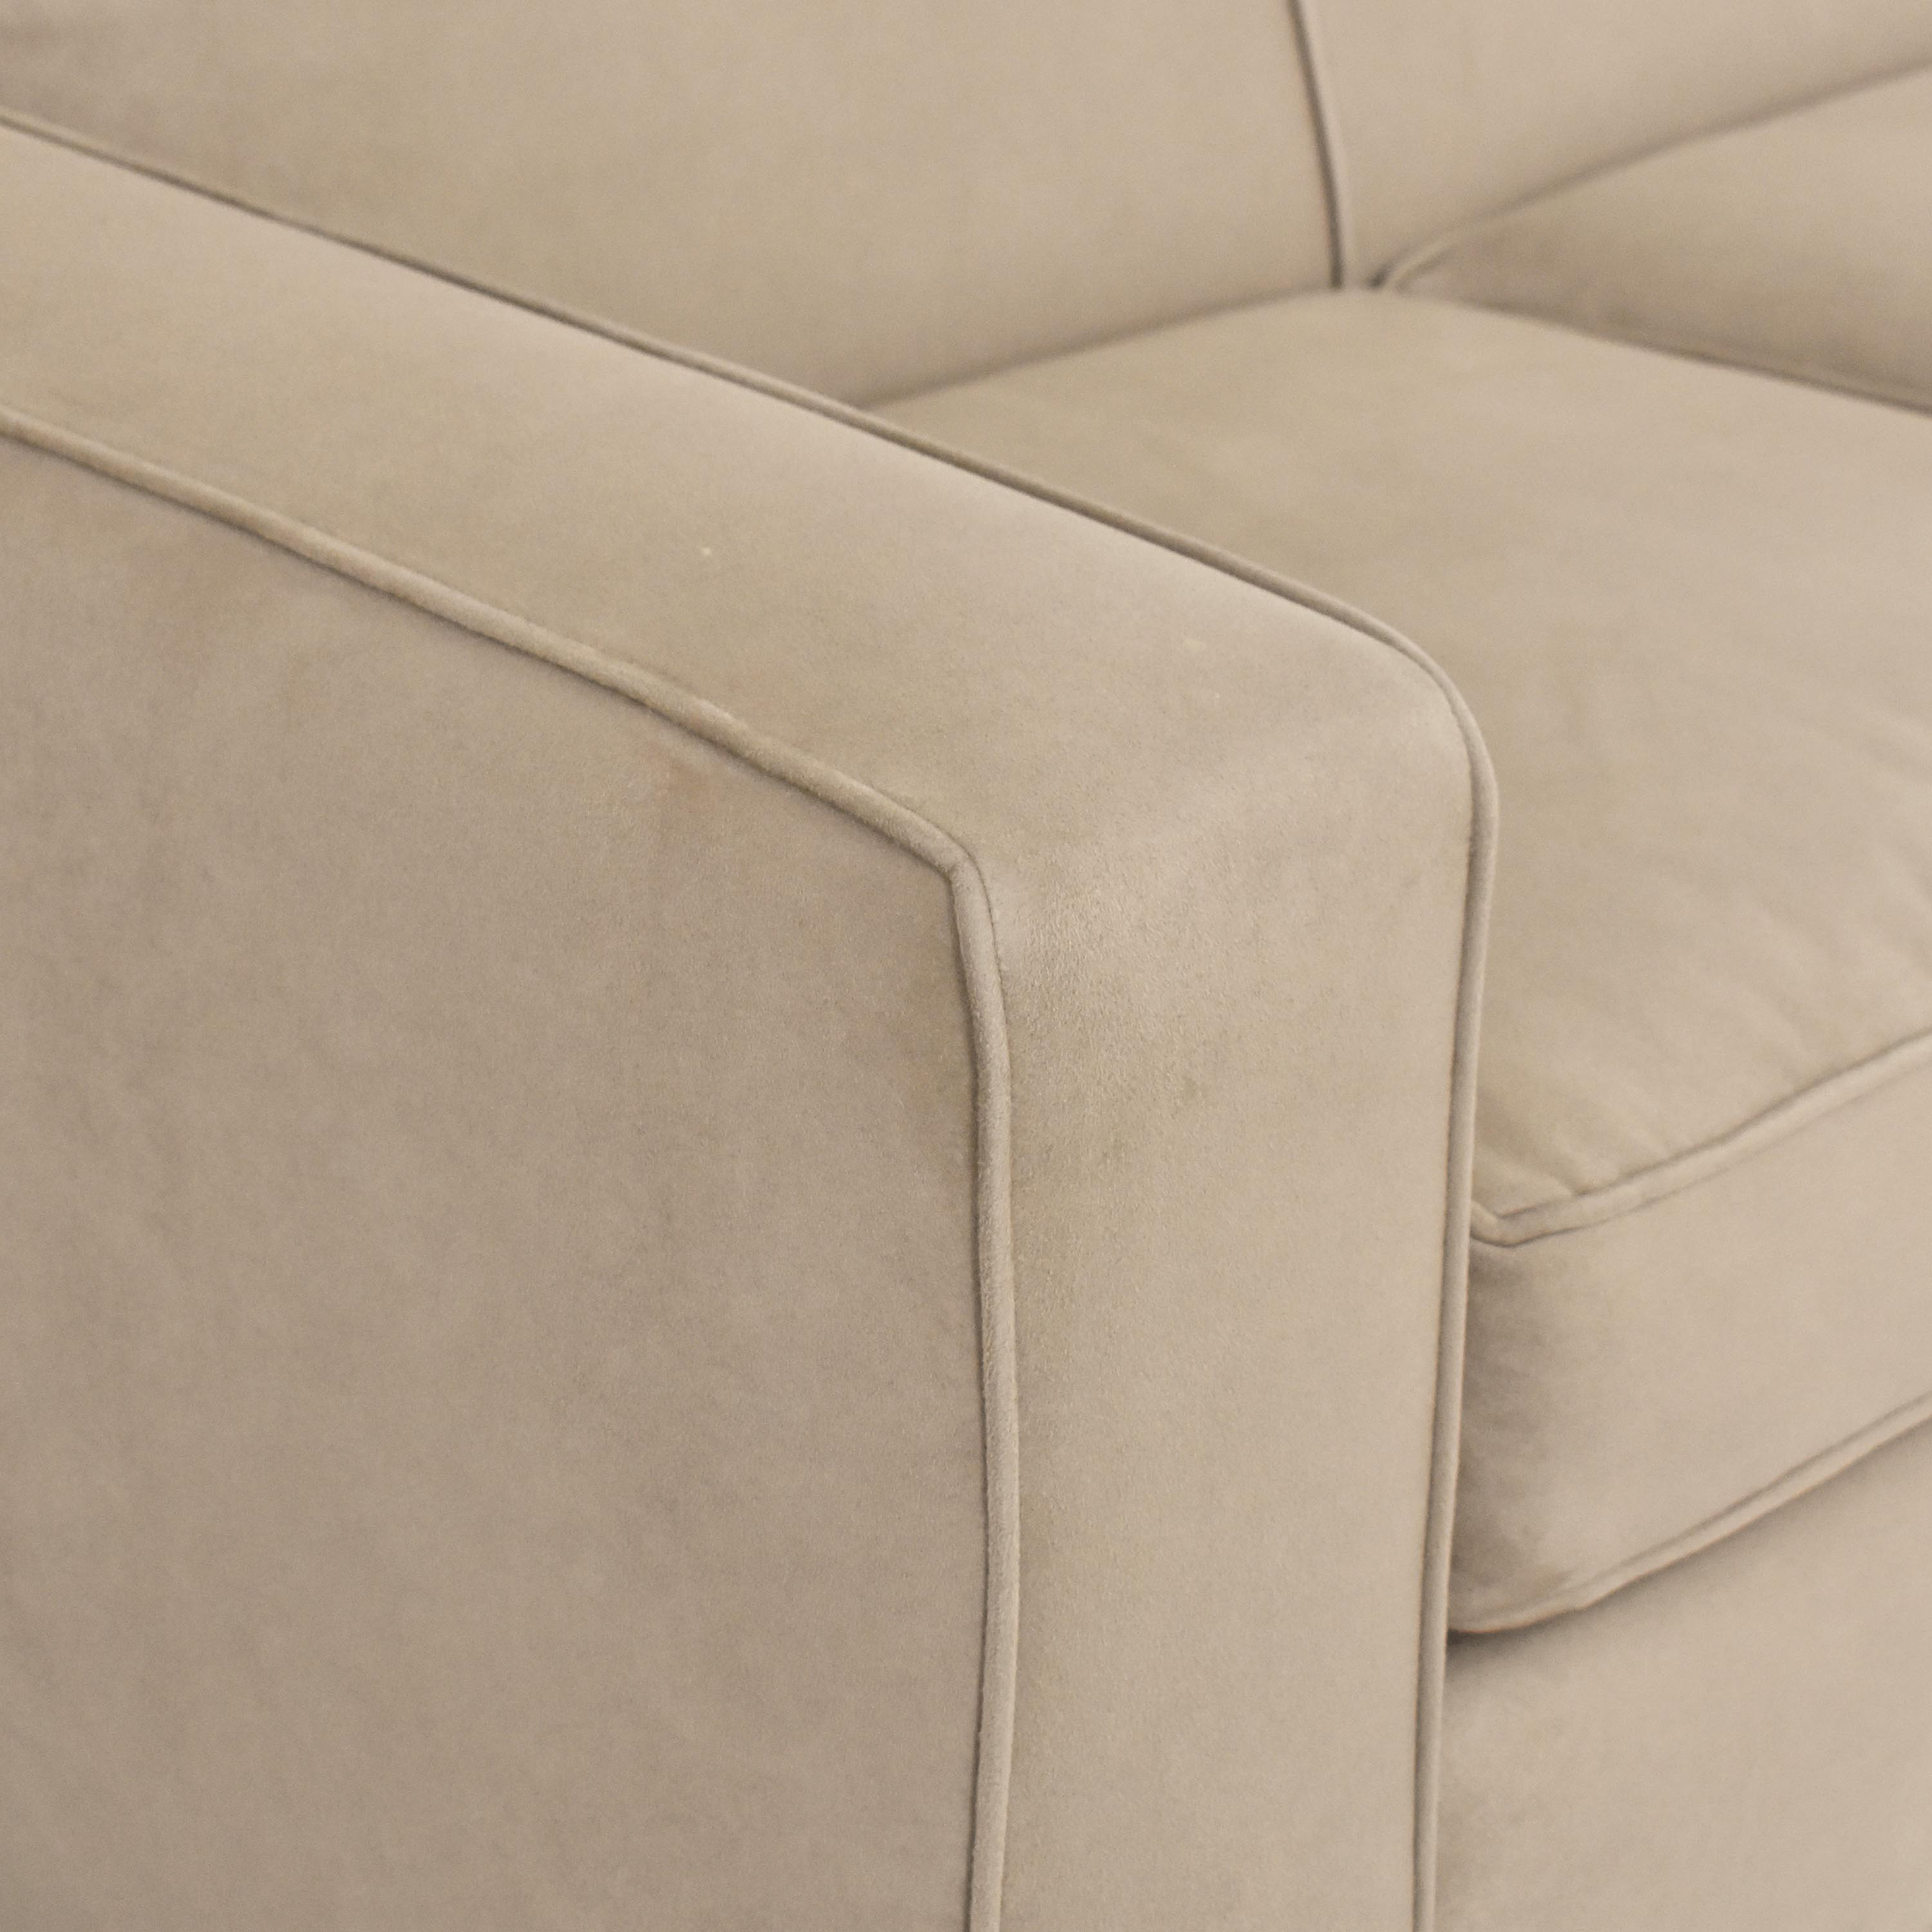 Crate & Barrel Crate & Barrel Axis II Three Seat Sofa tan